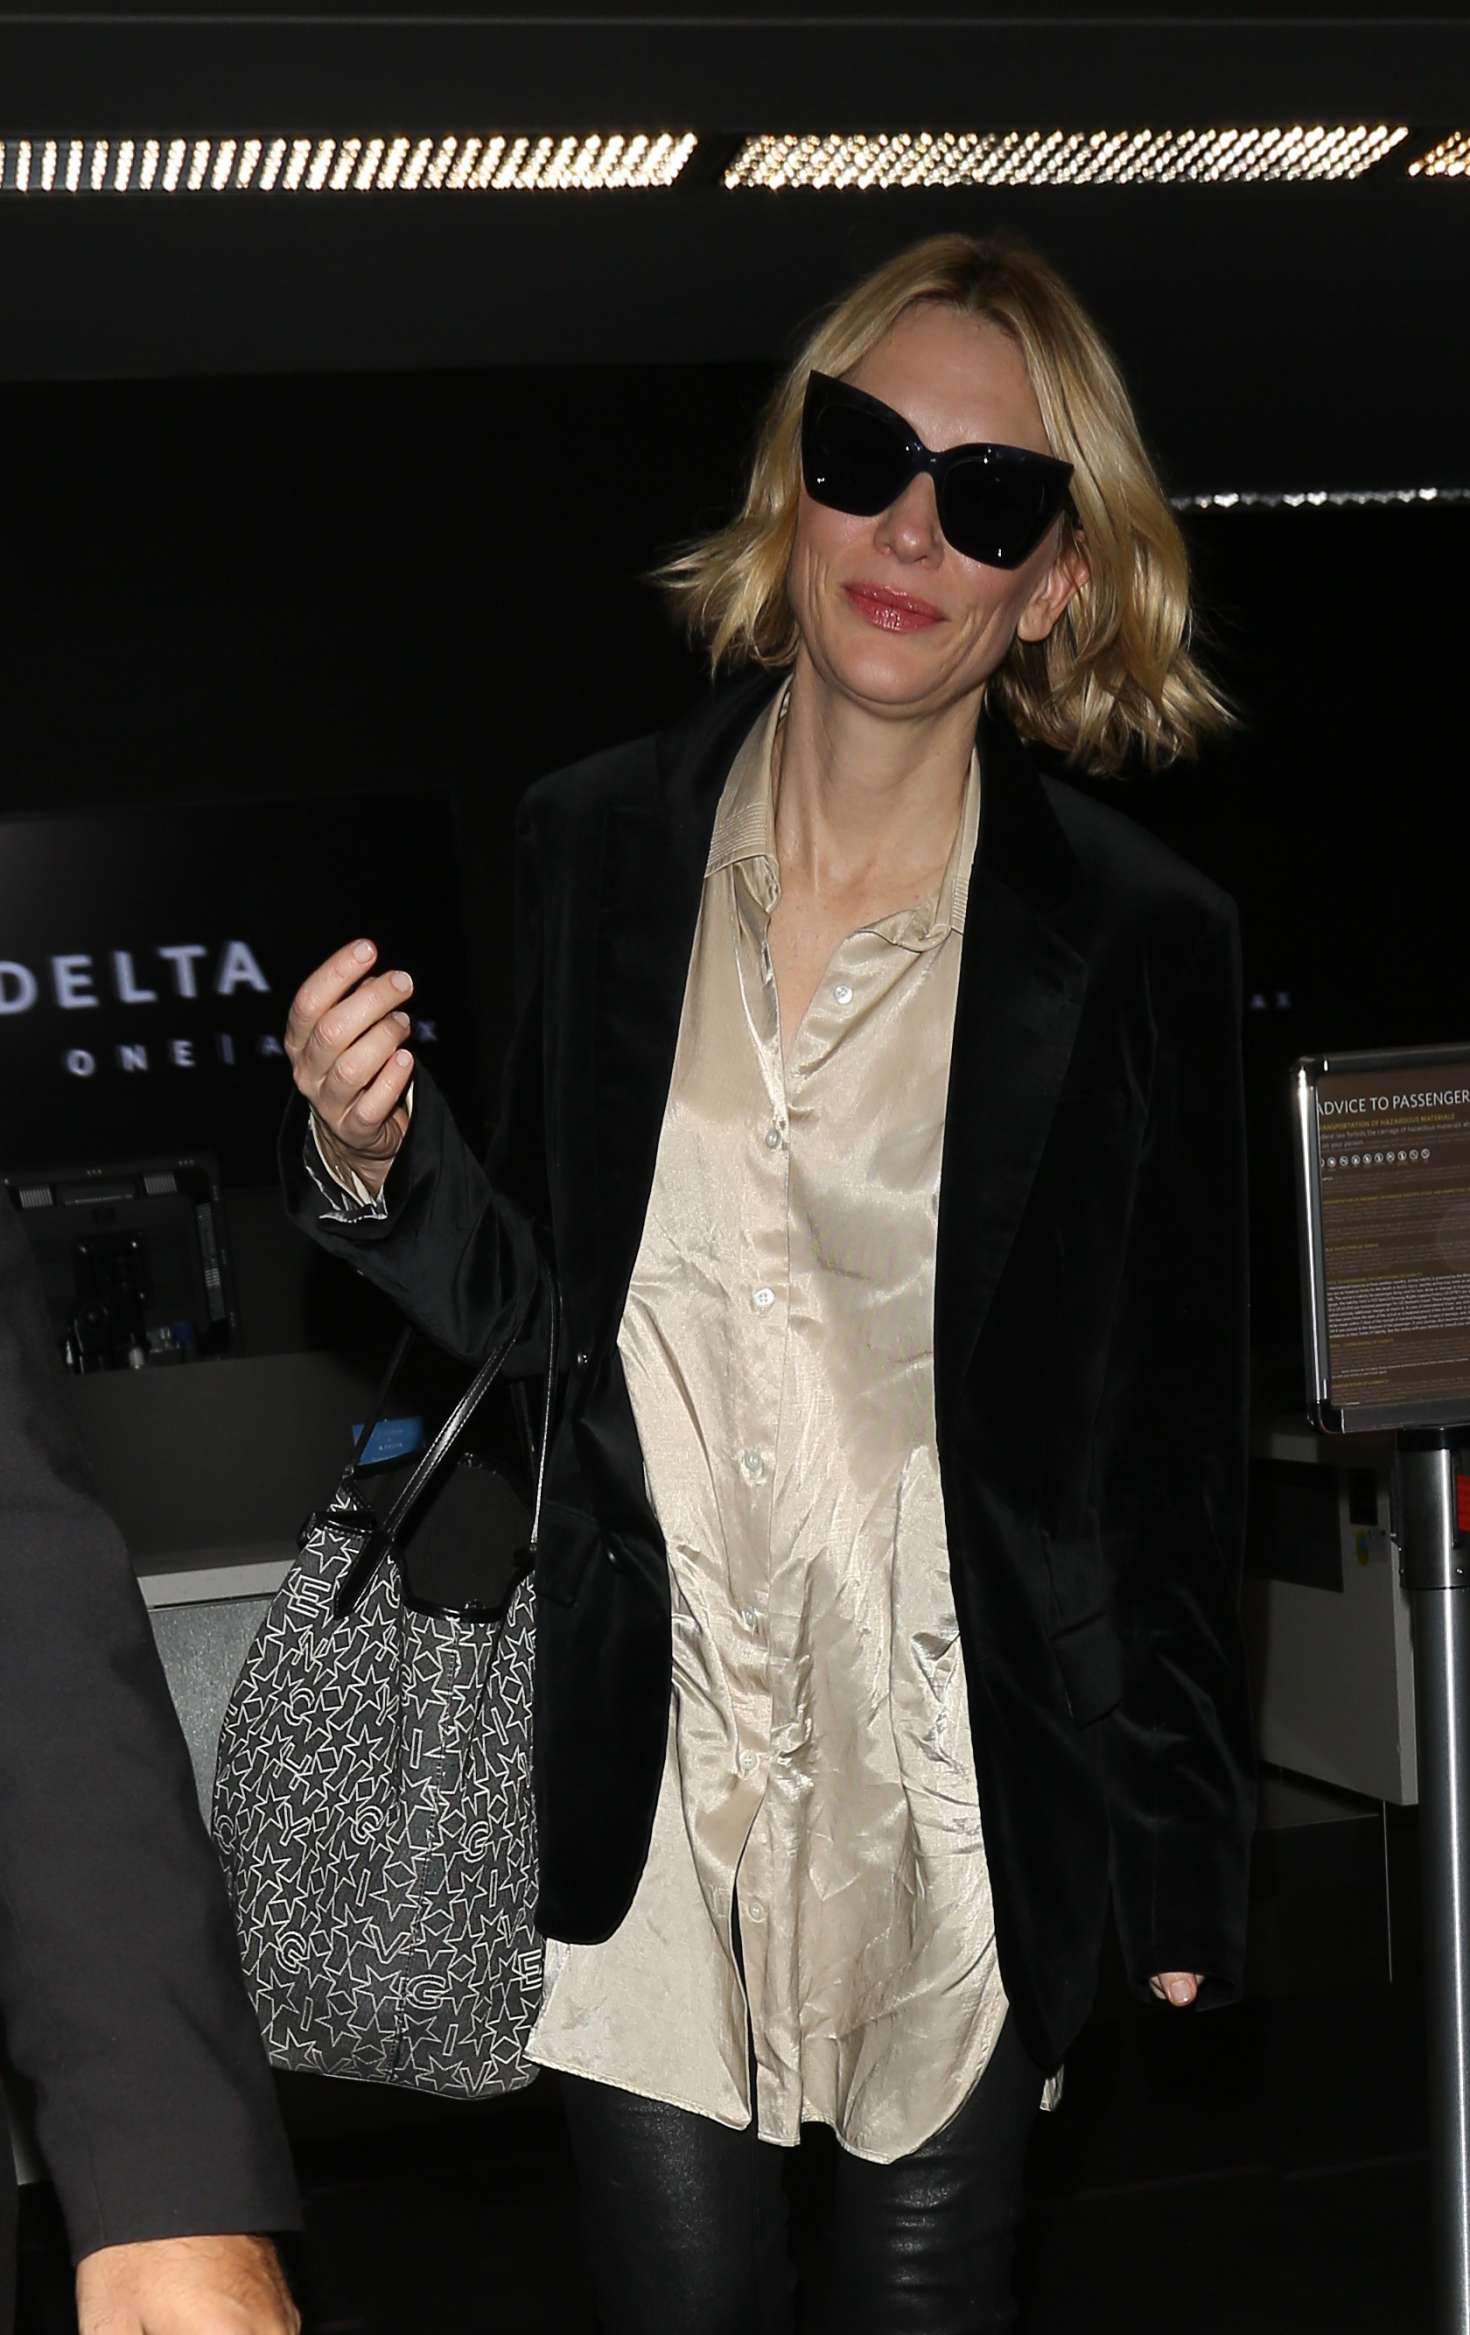 Cate Blanchett 2017 : Cate Blanchett at Los Angeles International Airport -06